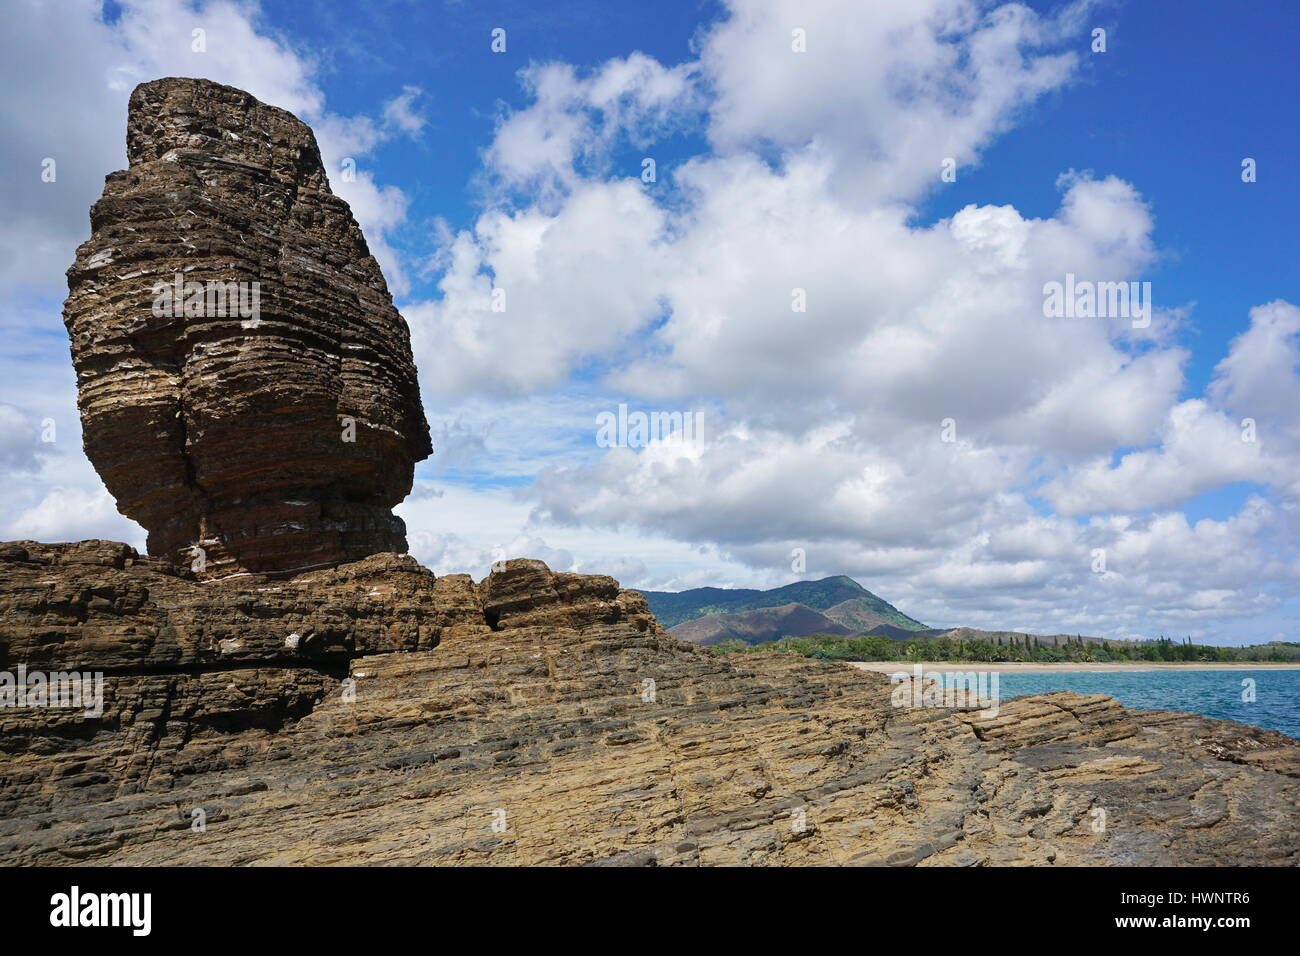 Rock formation on the seashore, the Bonhomme of Bourail, New Caledonia, Grande Terre island, south Pacific - Stock Image